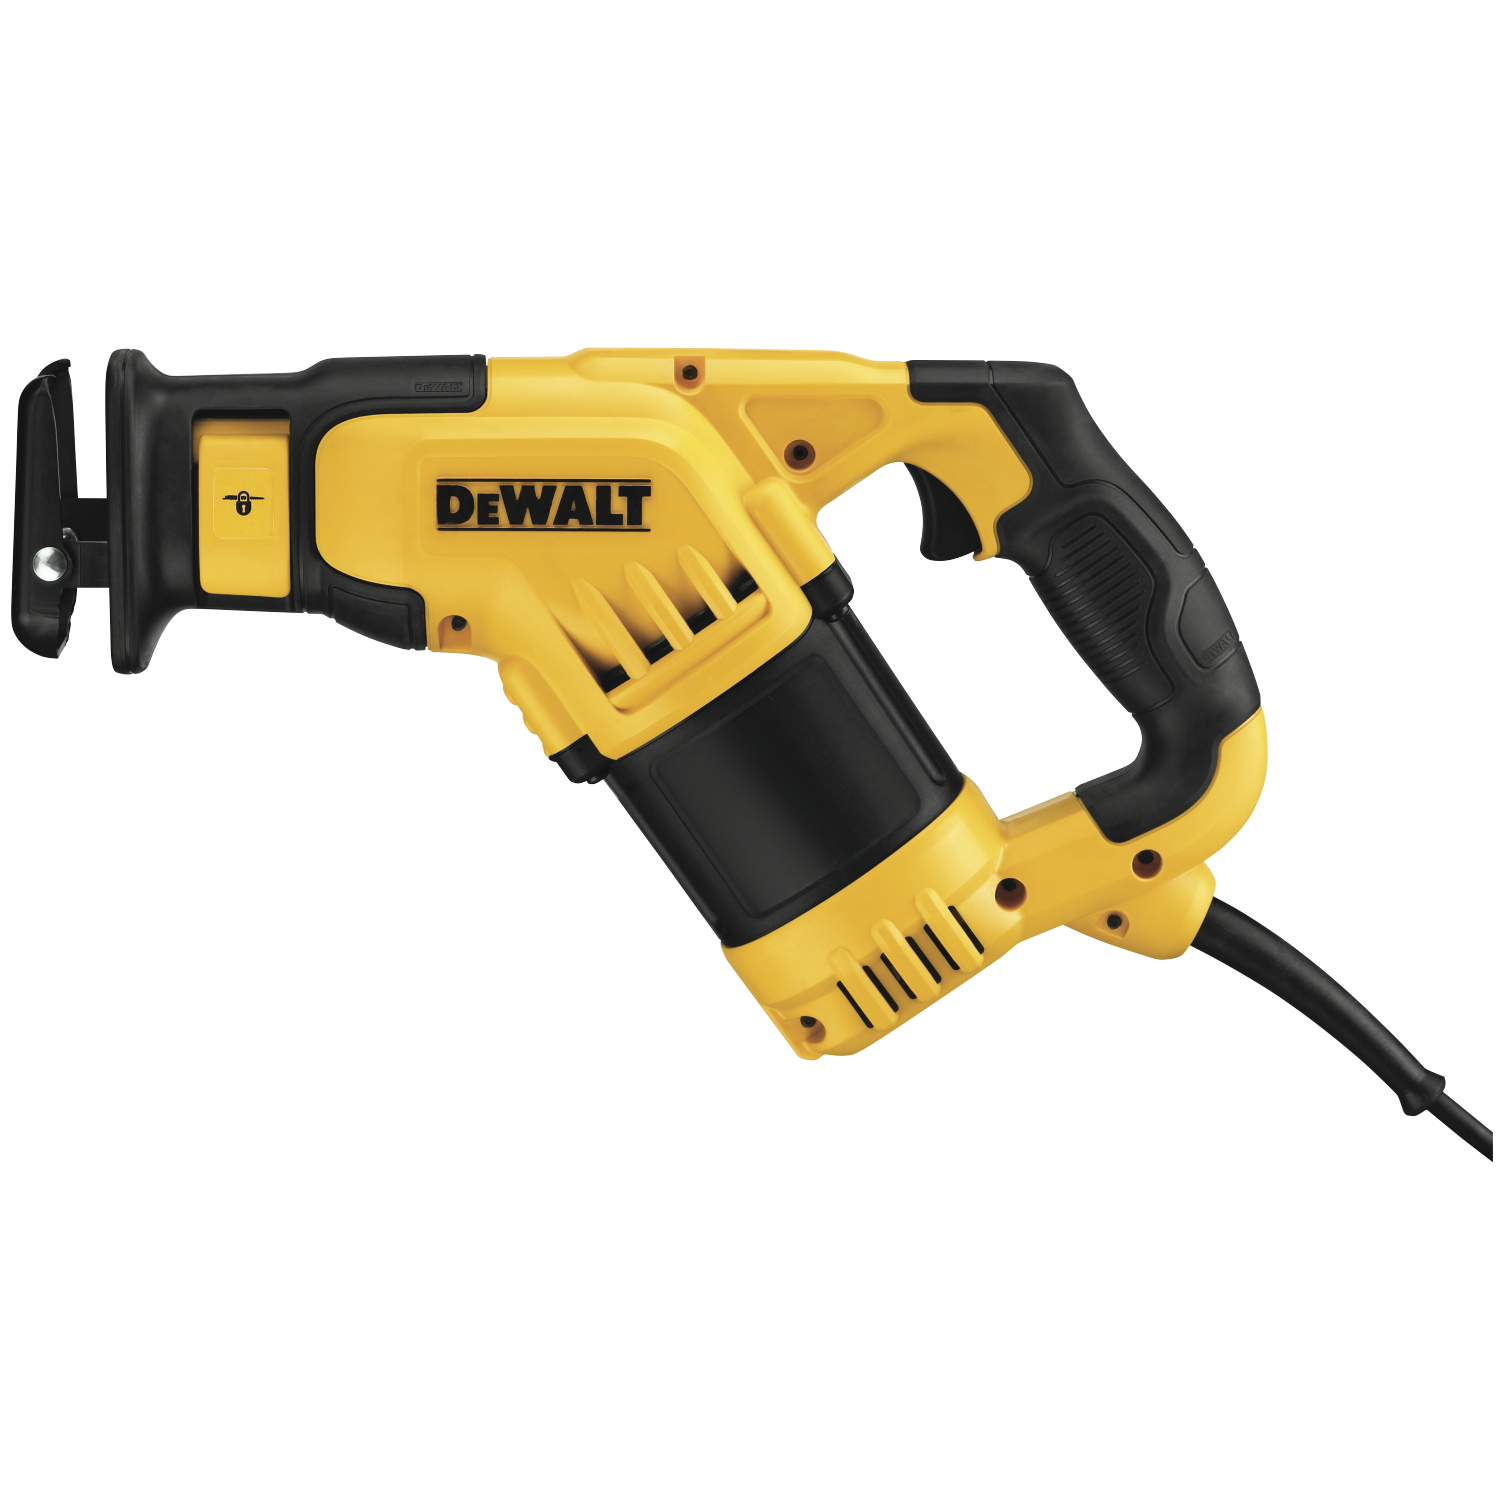 Dewalt dwe357 compact reciprocating saw greentooth